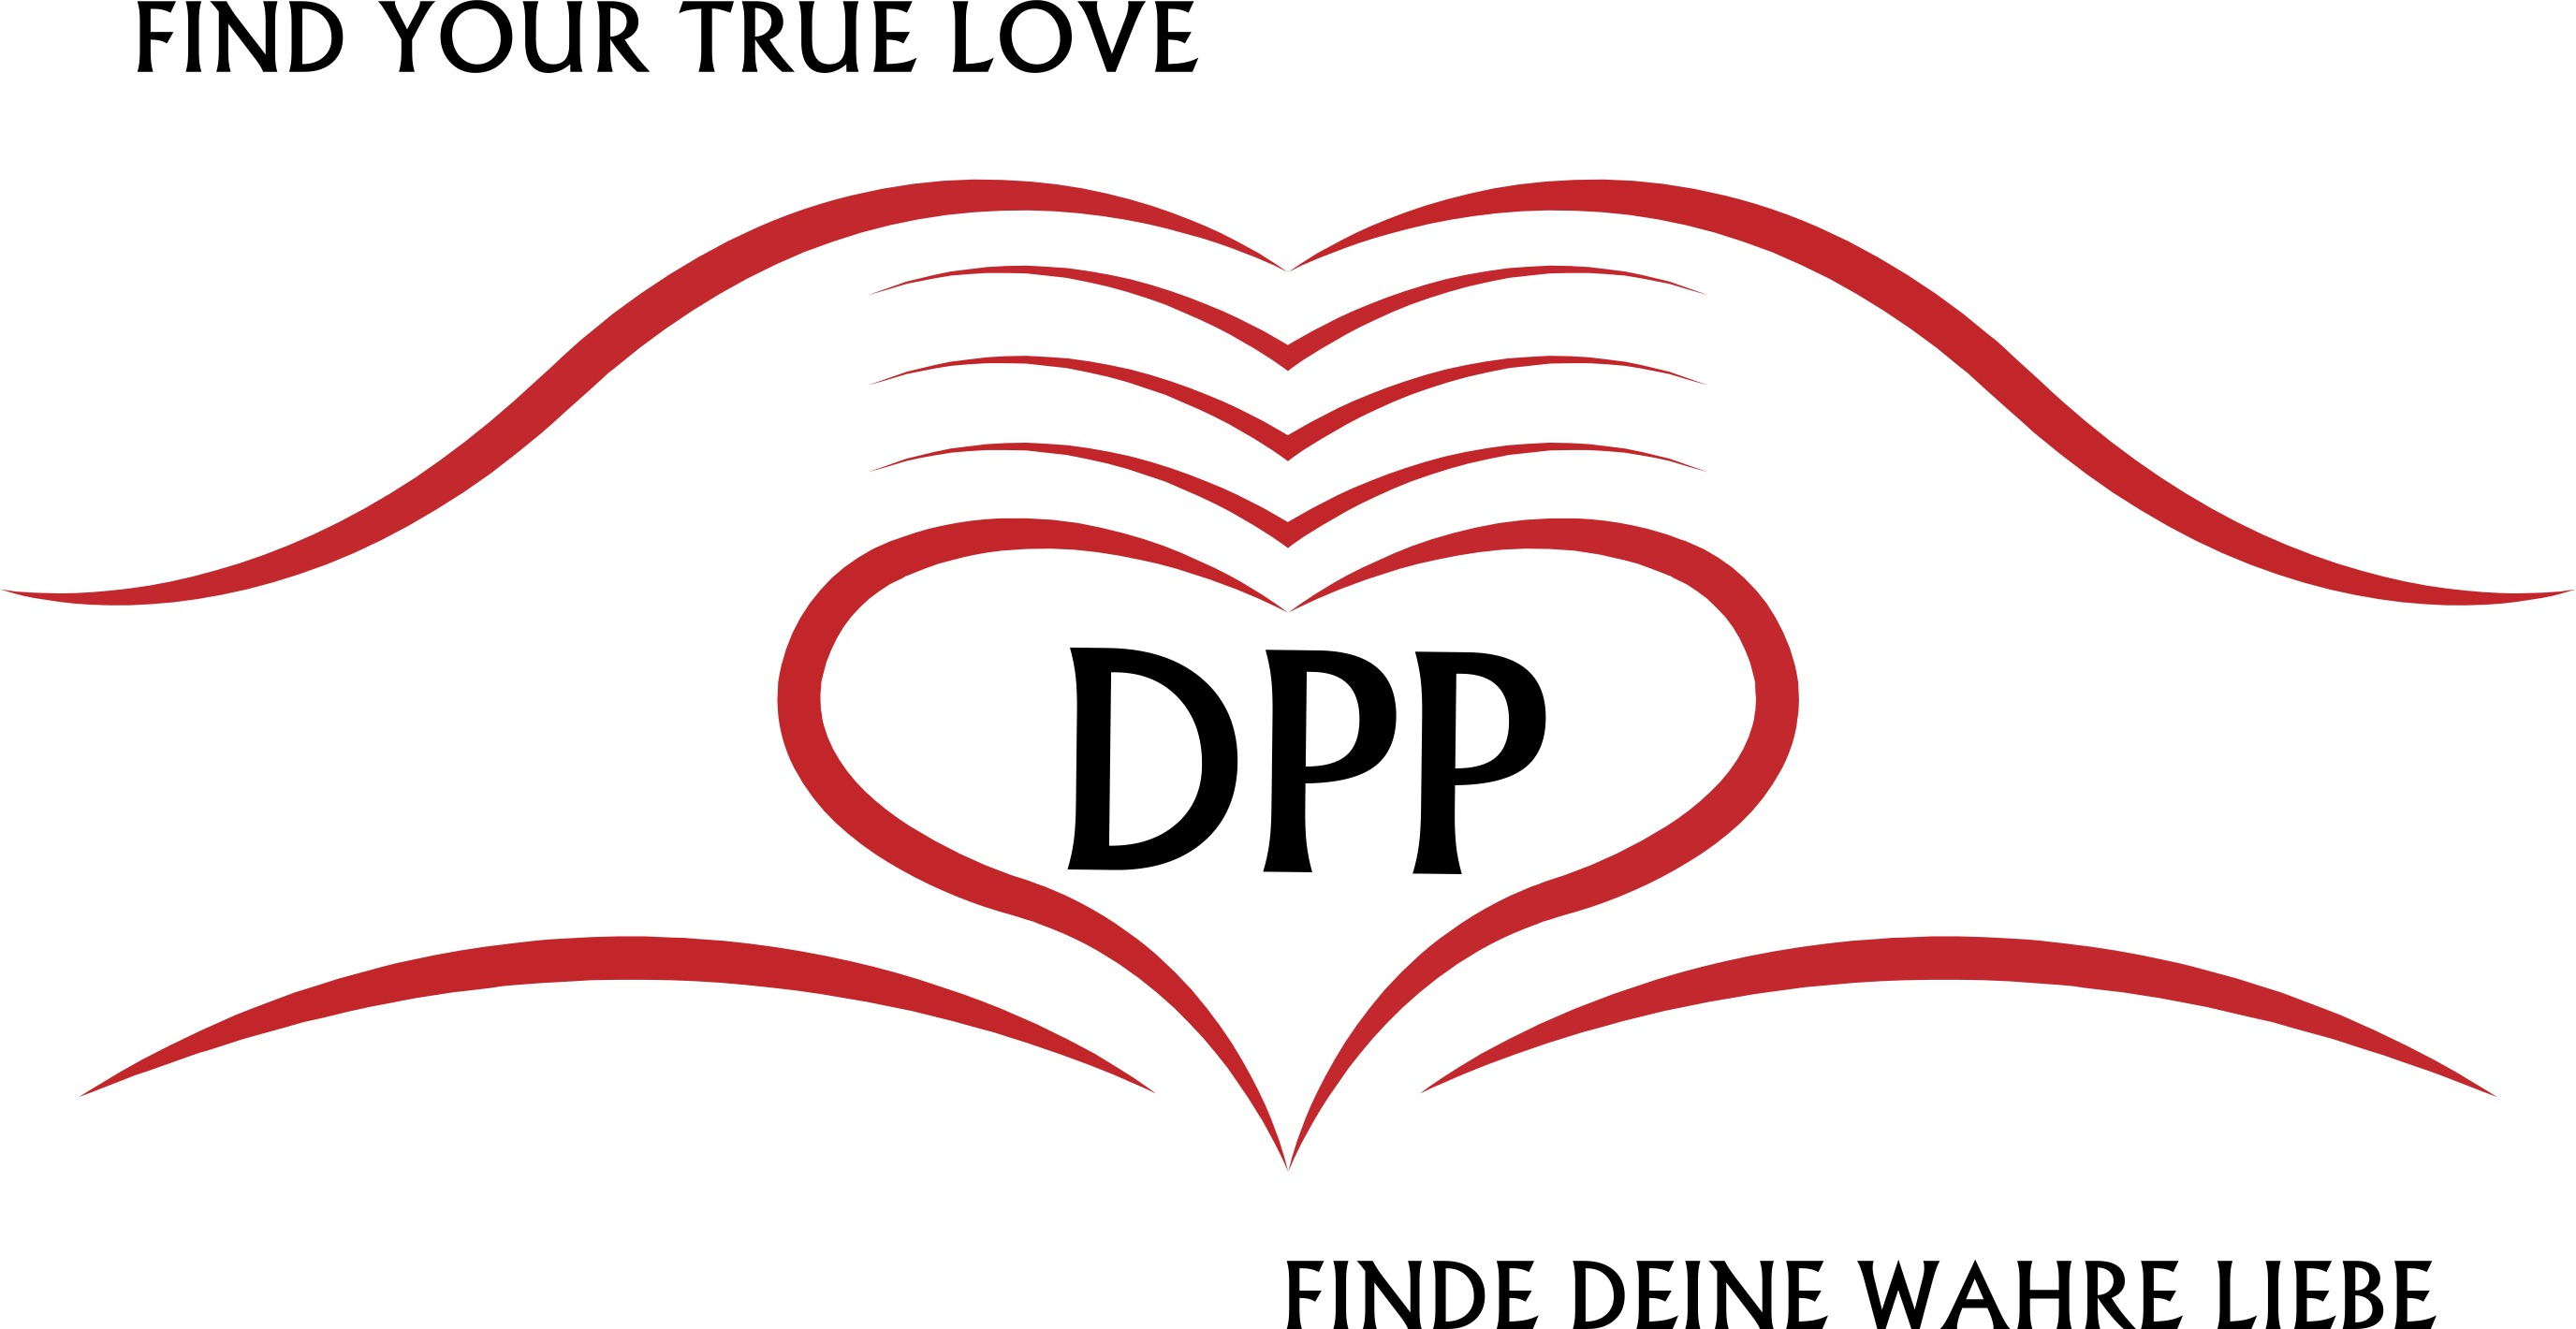 dpp zentrale partnervermittlung Big list of 250 of the top websites like partnervermittlung-oxanade dpp-bayernde - deine das zentrale frauenmagazin im österreichischen web.